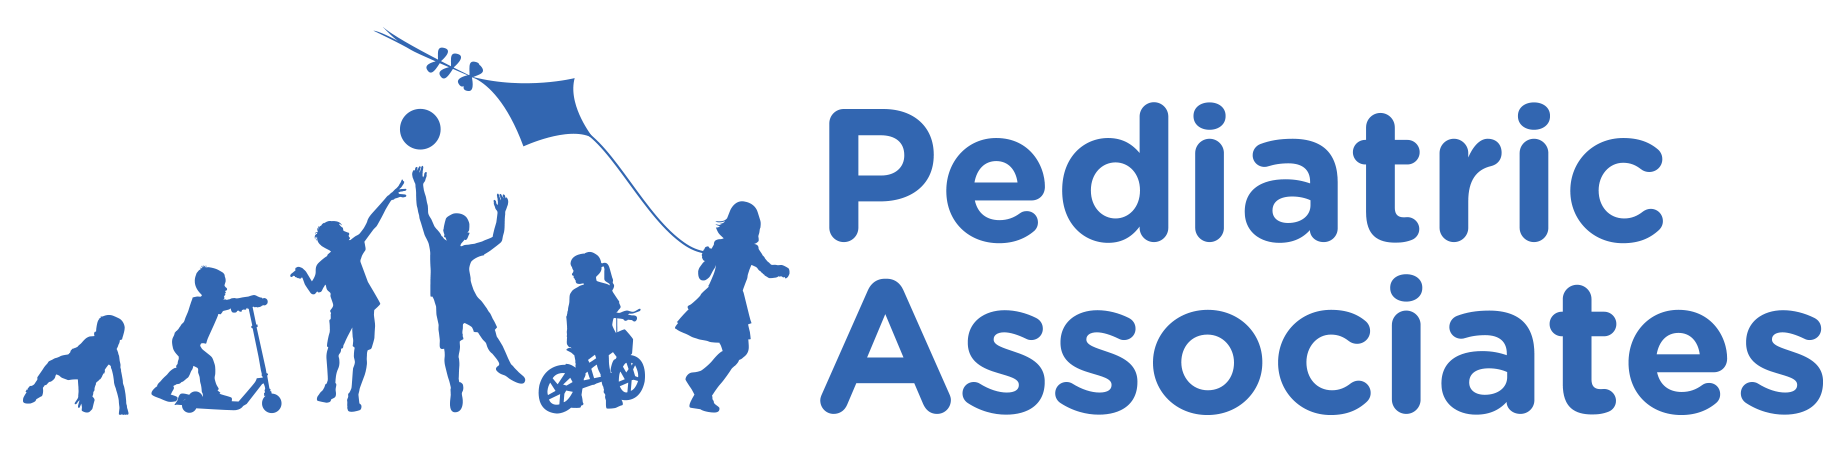 Pediatric Associates | Bristol CT